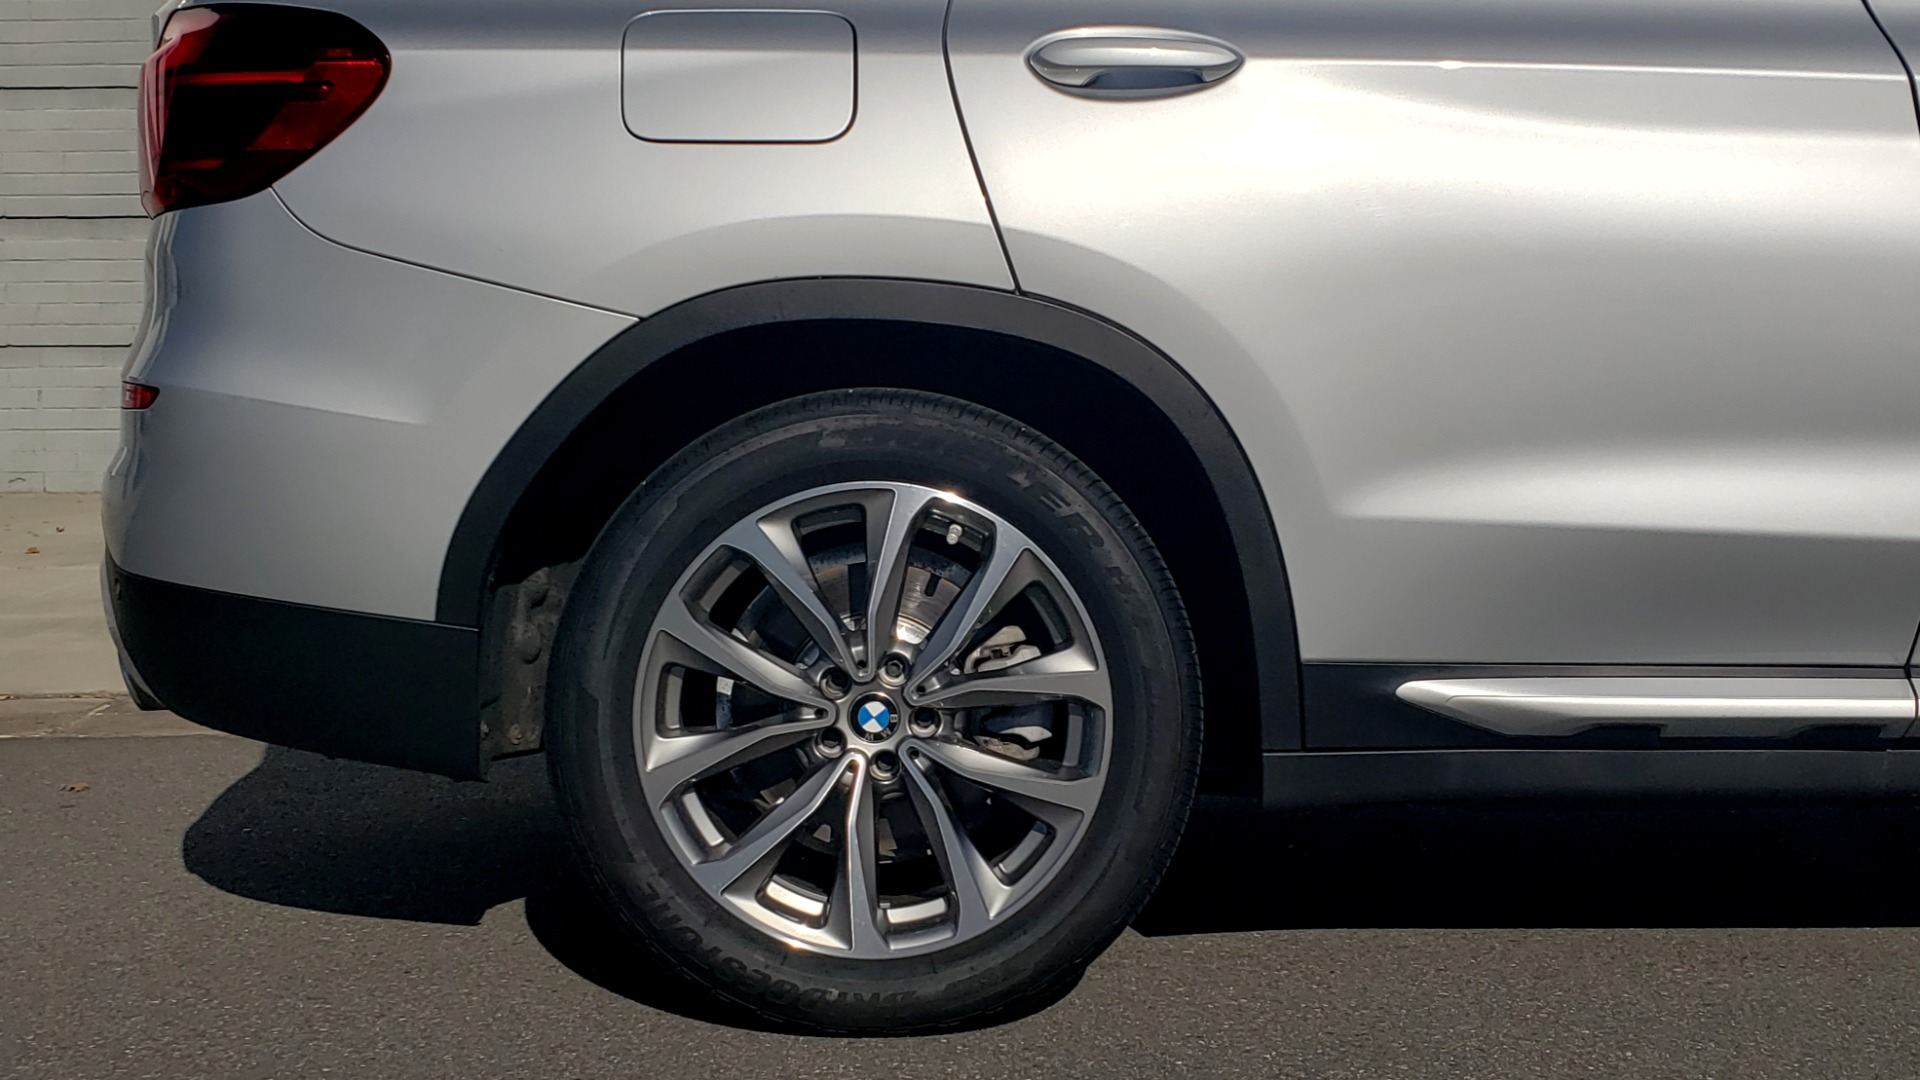 Used 2019 BMW X3 XDRIVE30I / DRVR ASST / PANO-ROOF / HTD STS / REARVIEW for sale $41,995 at Formula Imports in Charlotte NC 28227 83